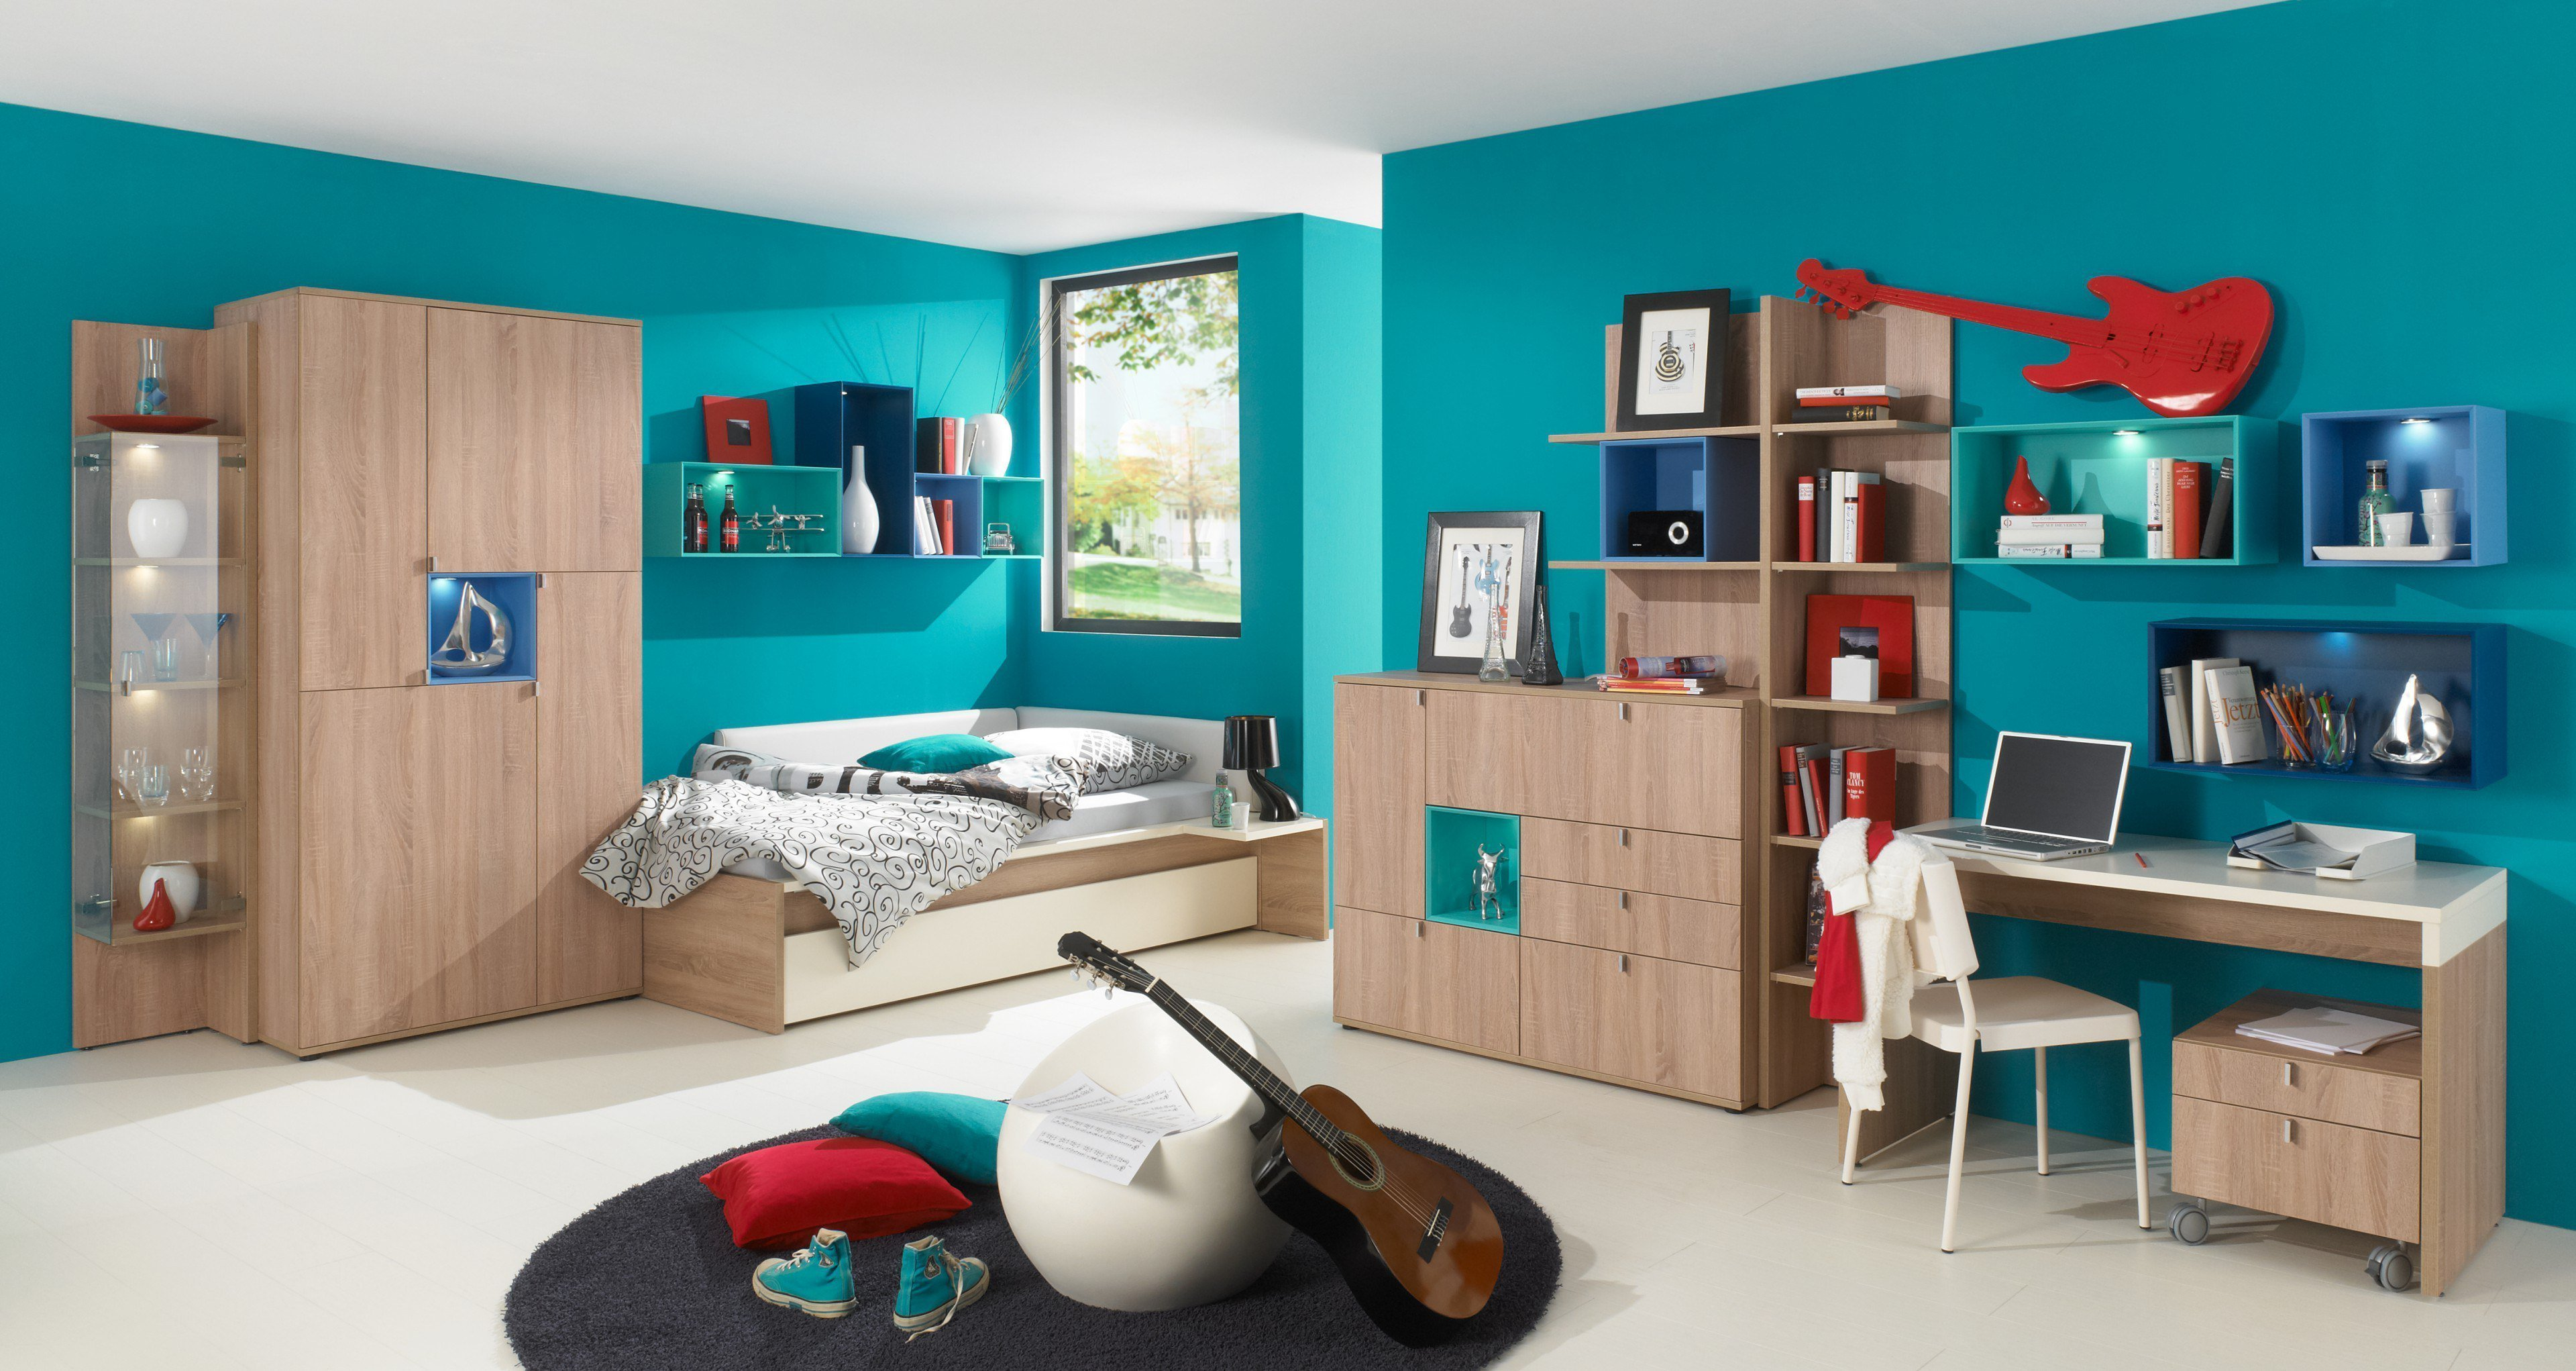 chatroom von rudolf jugendzimmer eiche nachbildung blau online kaufen 39. Black Bedroom Furniture Sets. Home Design Ideas